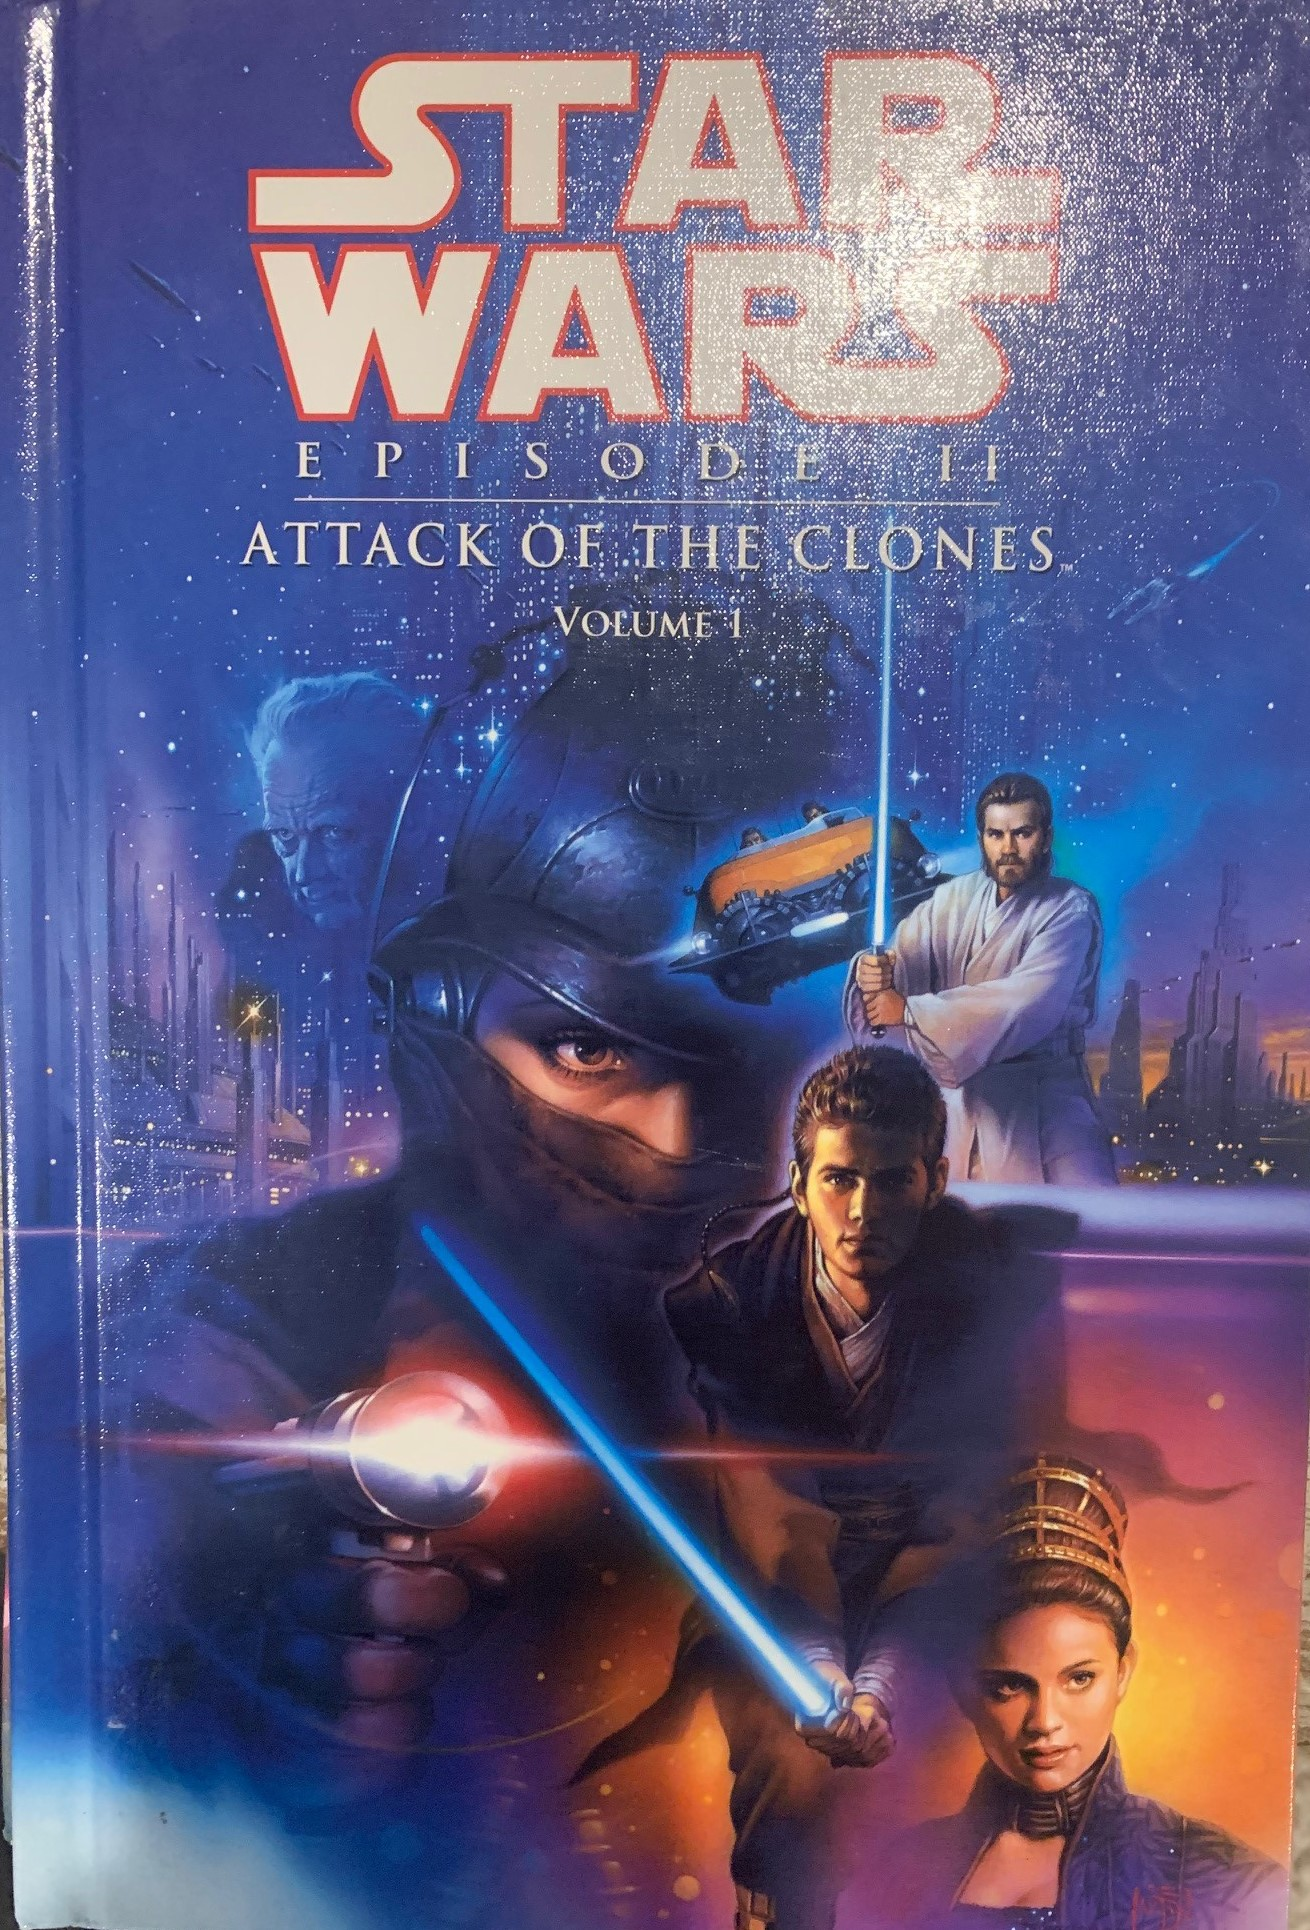 Star Wars Episode II: Attack of the Clones (Spotlight Comic Edition, Volume 1)